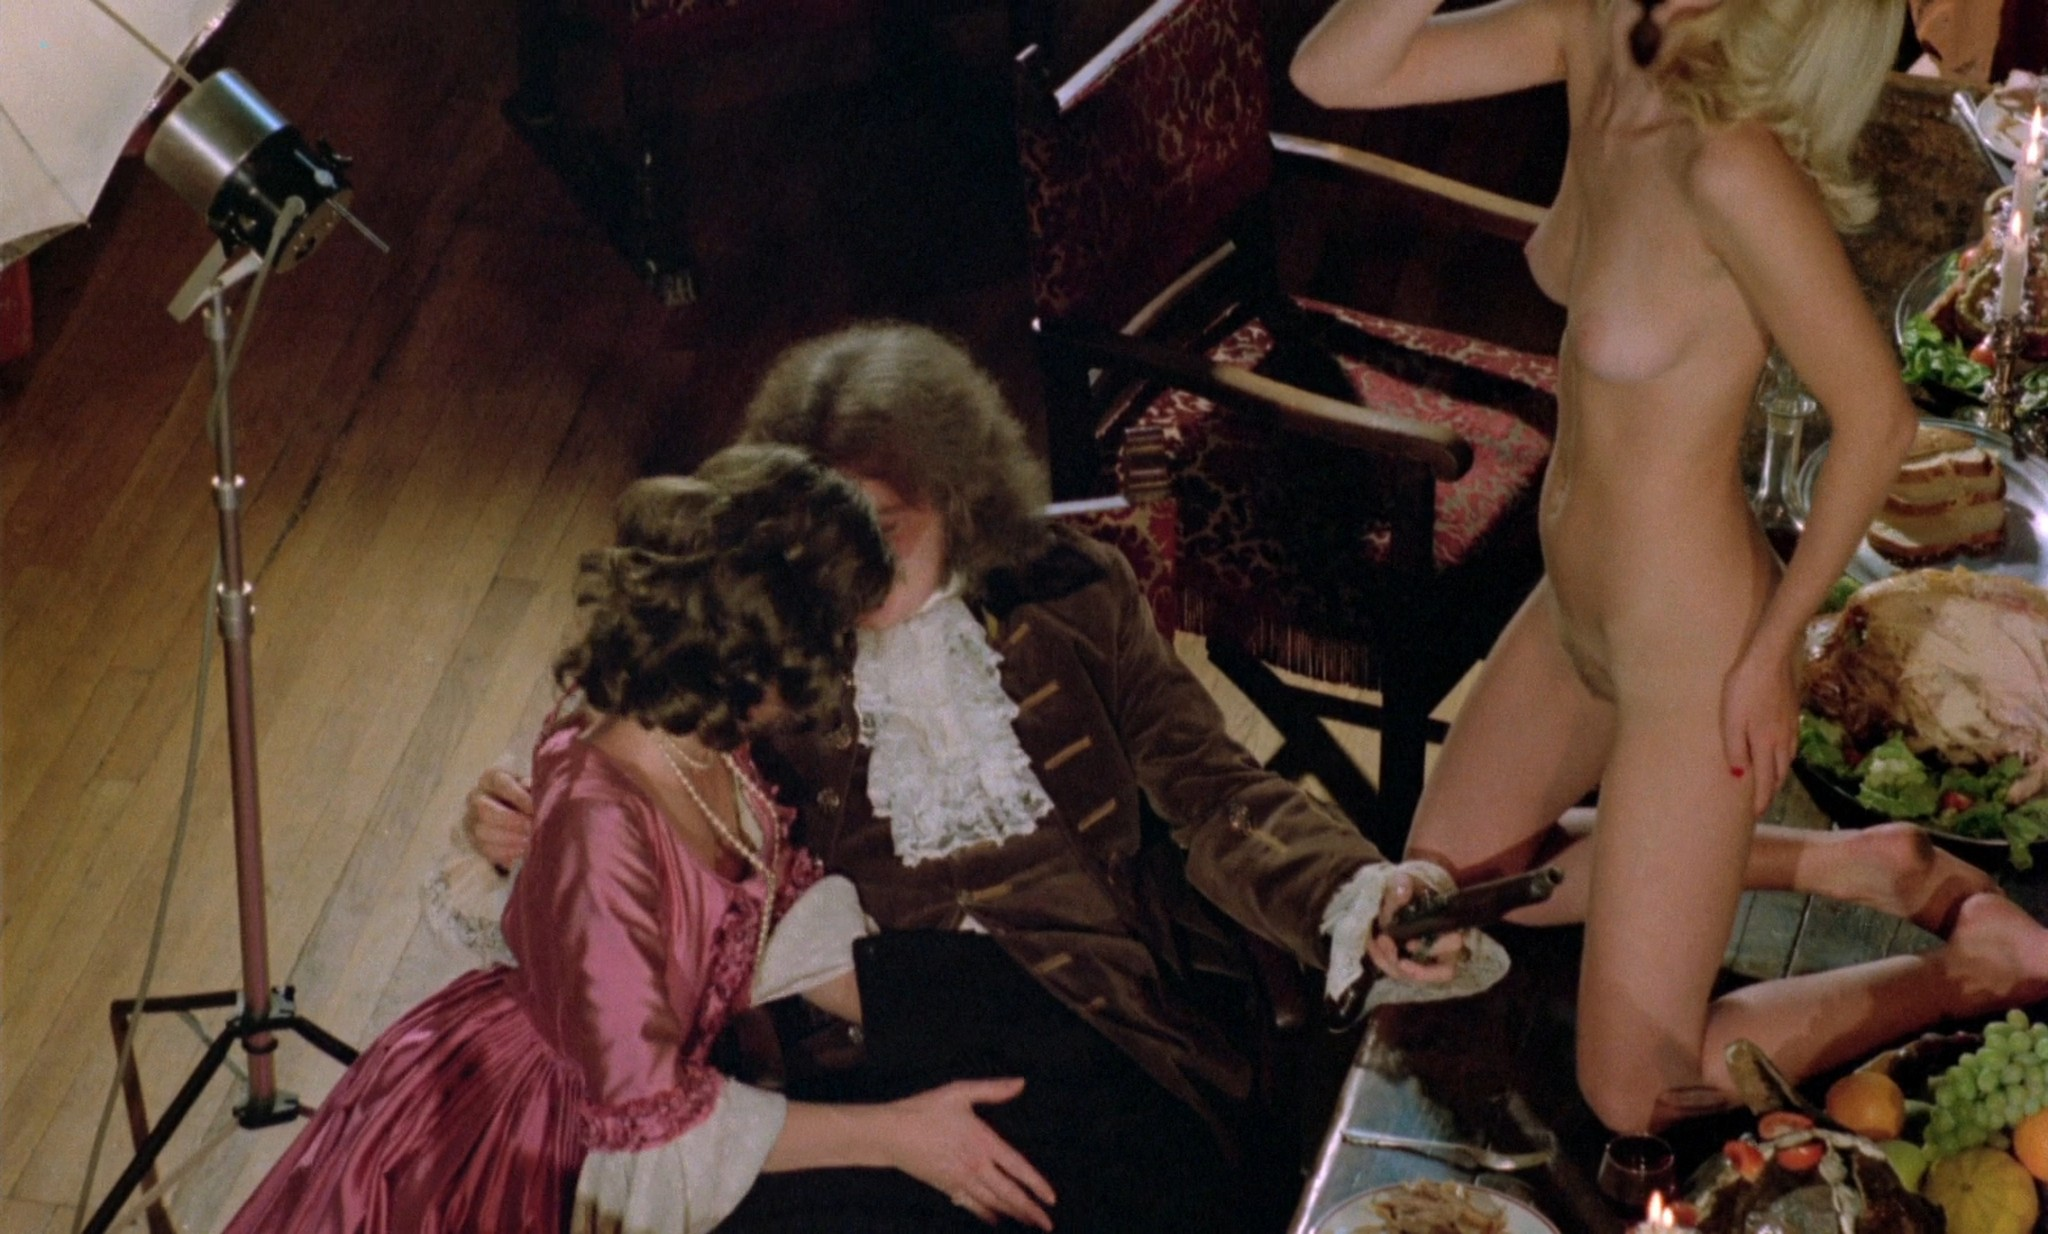 Suzy Mandel nude full frontal Gloria Brittain others nude sex - The Playbirds (UK-1978) HD 1080p BluRay (16)